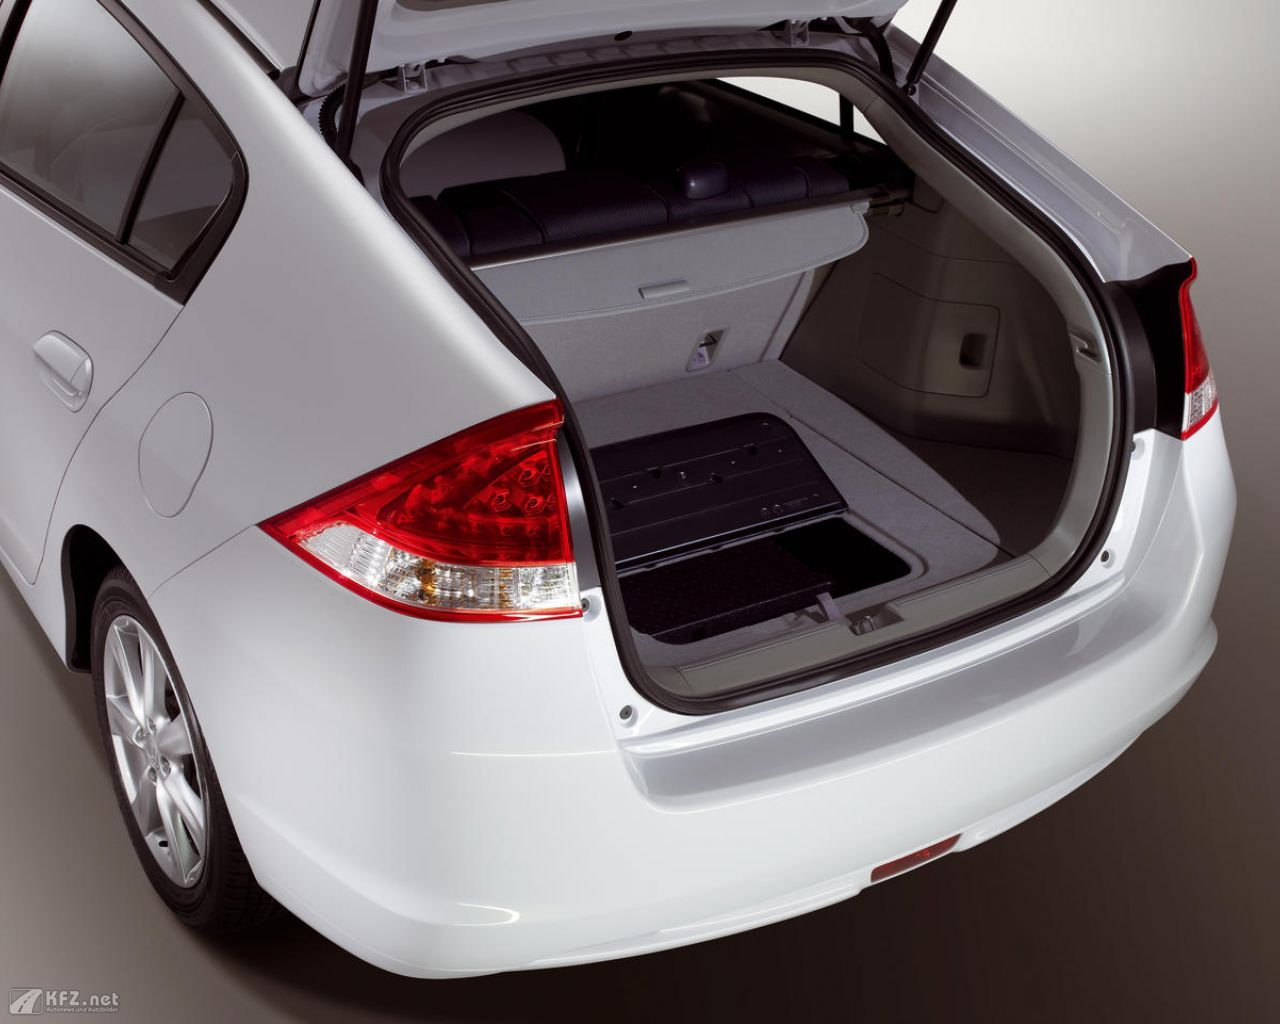 honda-insight-1280x1024-181